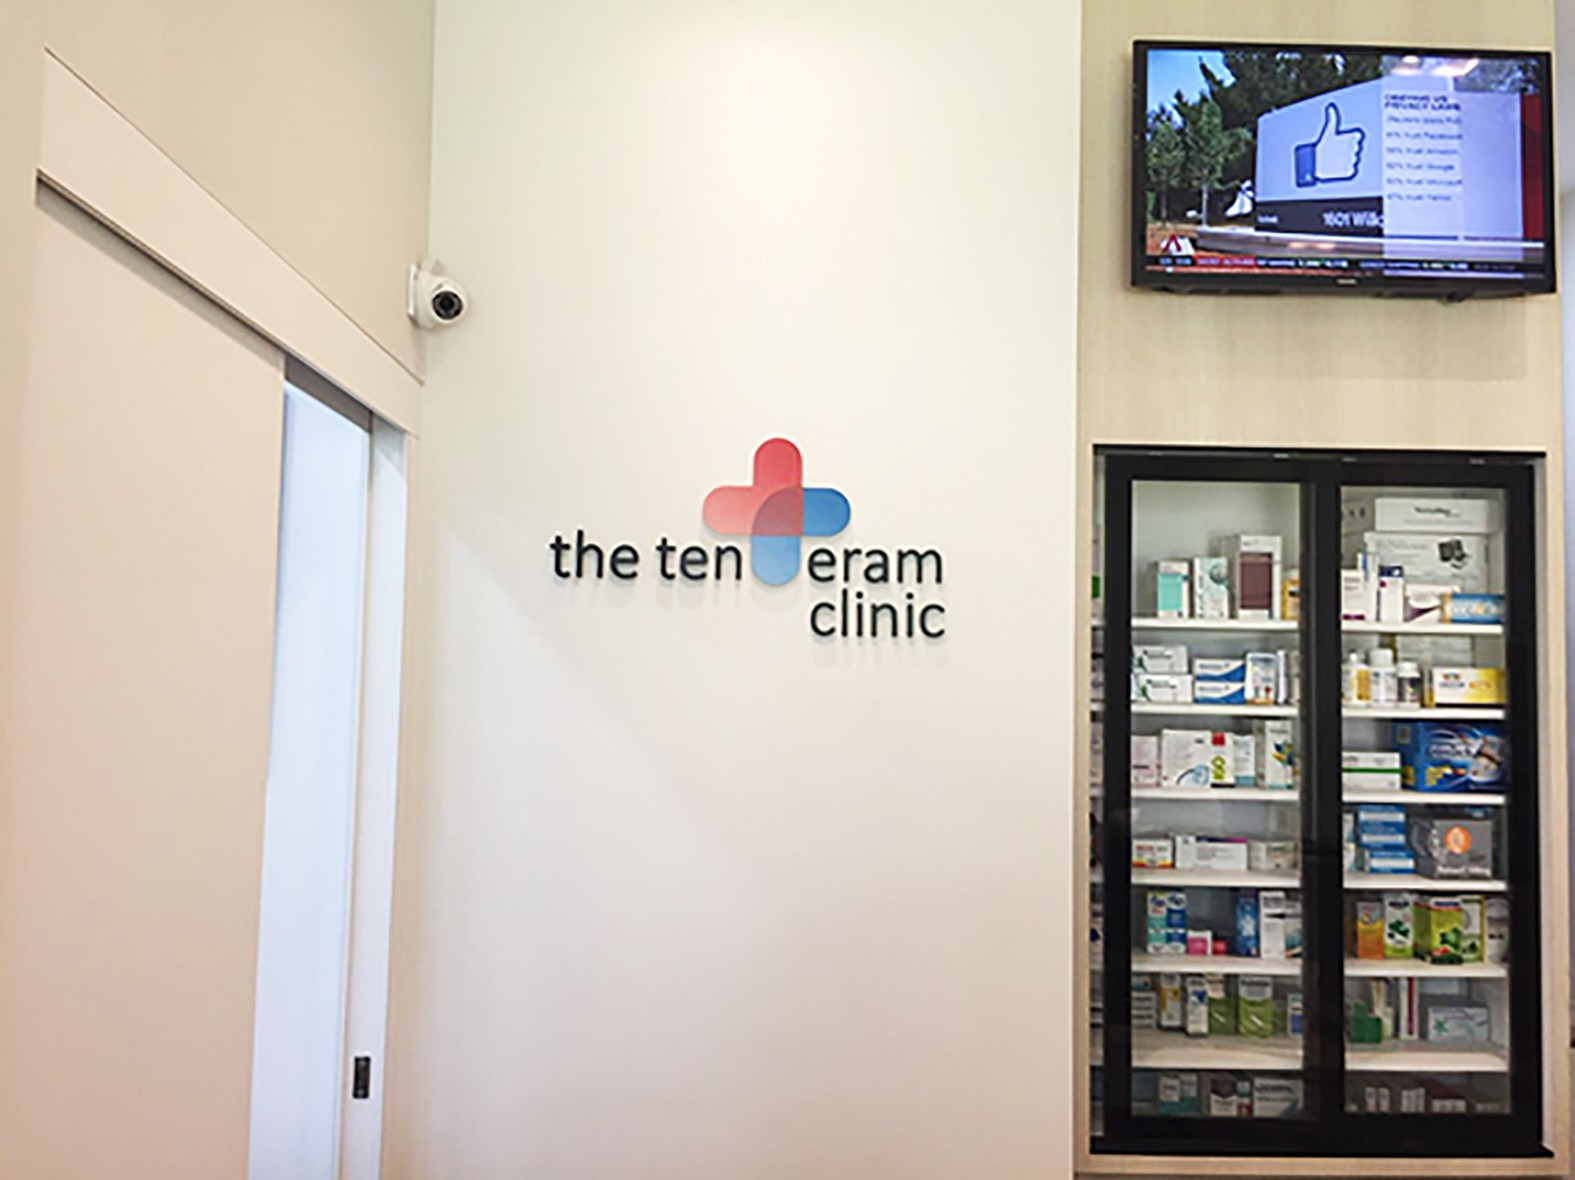 the ten eram clinic